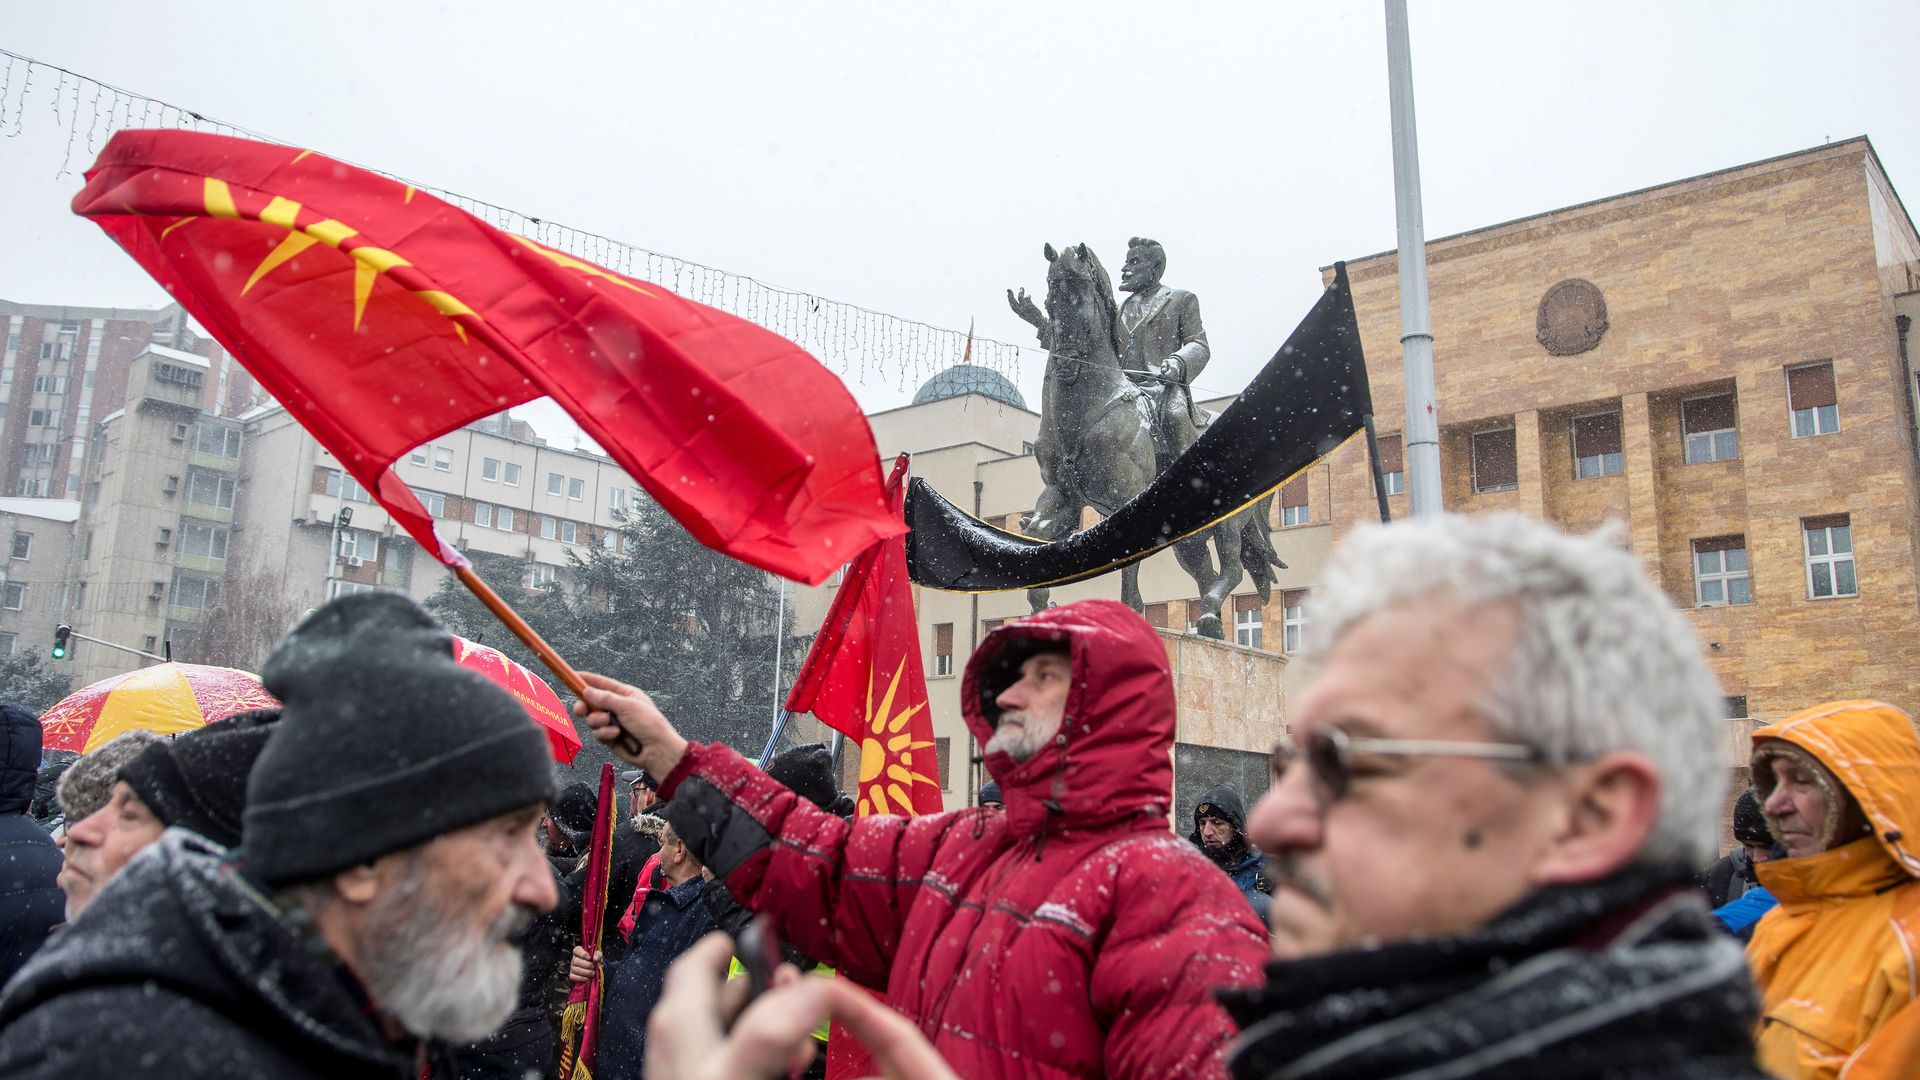 A demonstrator waves the old Macedonian flag during a protest against a process of renaming the country's name in front of the Parliament building.